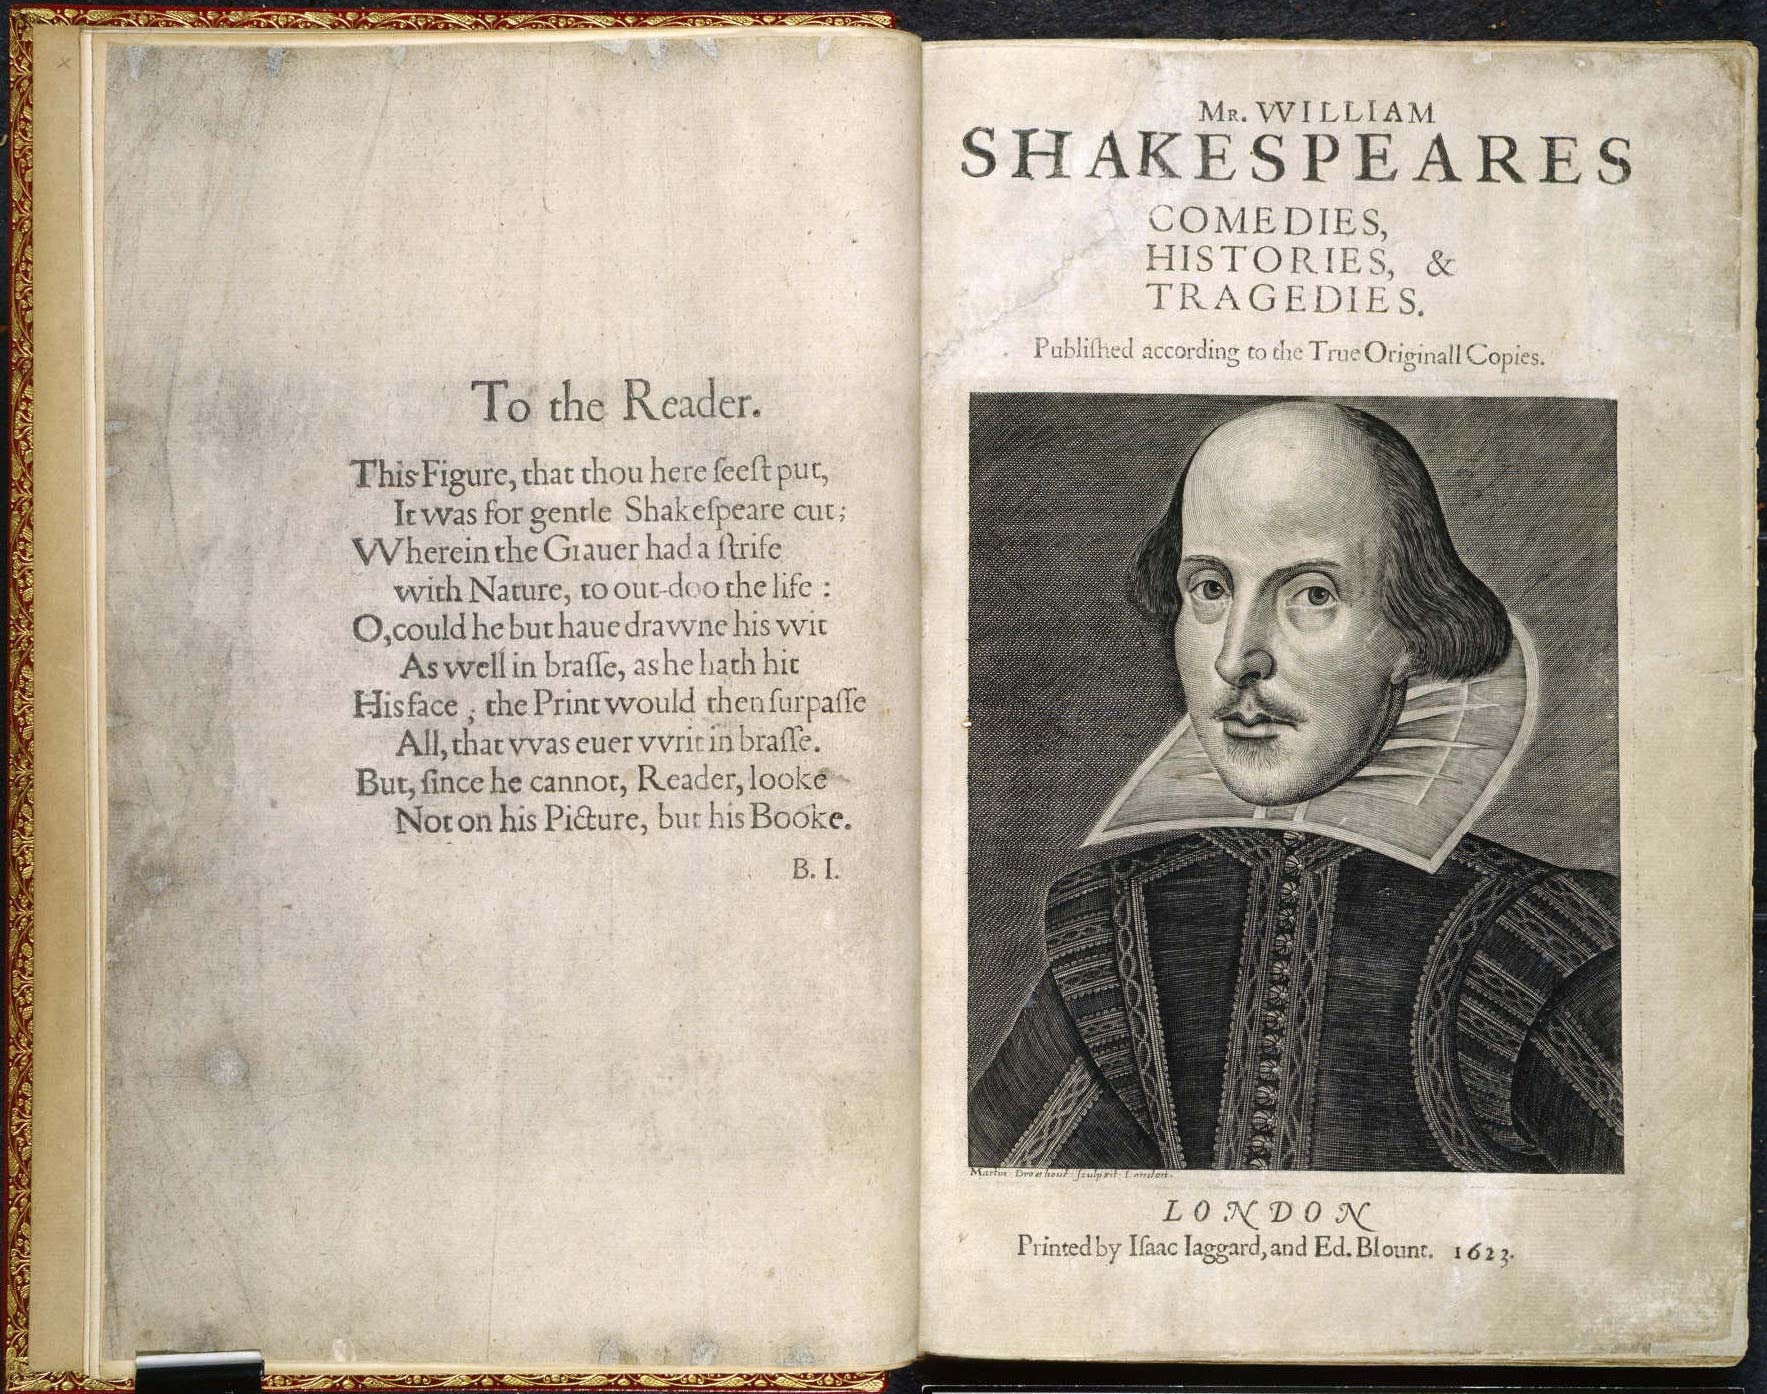 Shakespeare's First Folio - title page and introduction by Ben Johnson